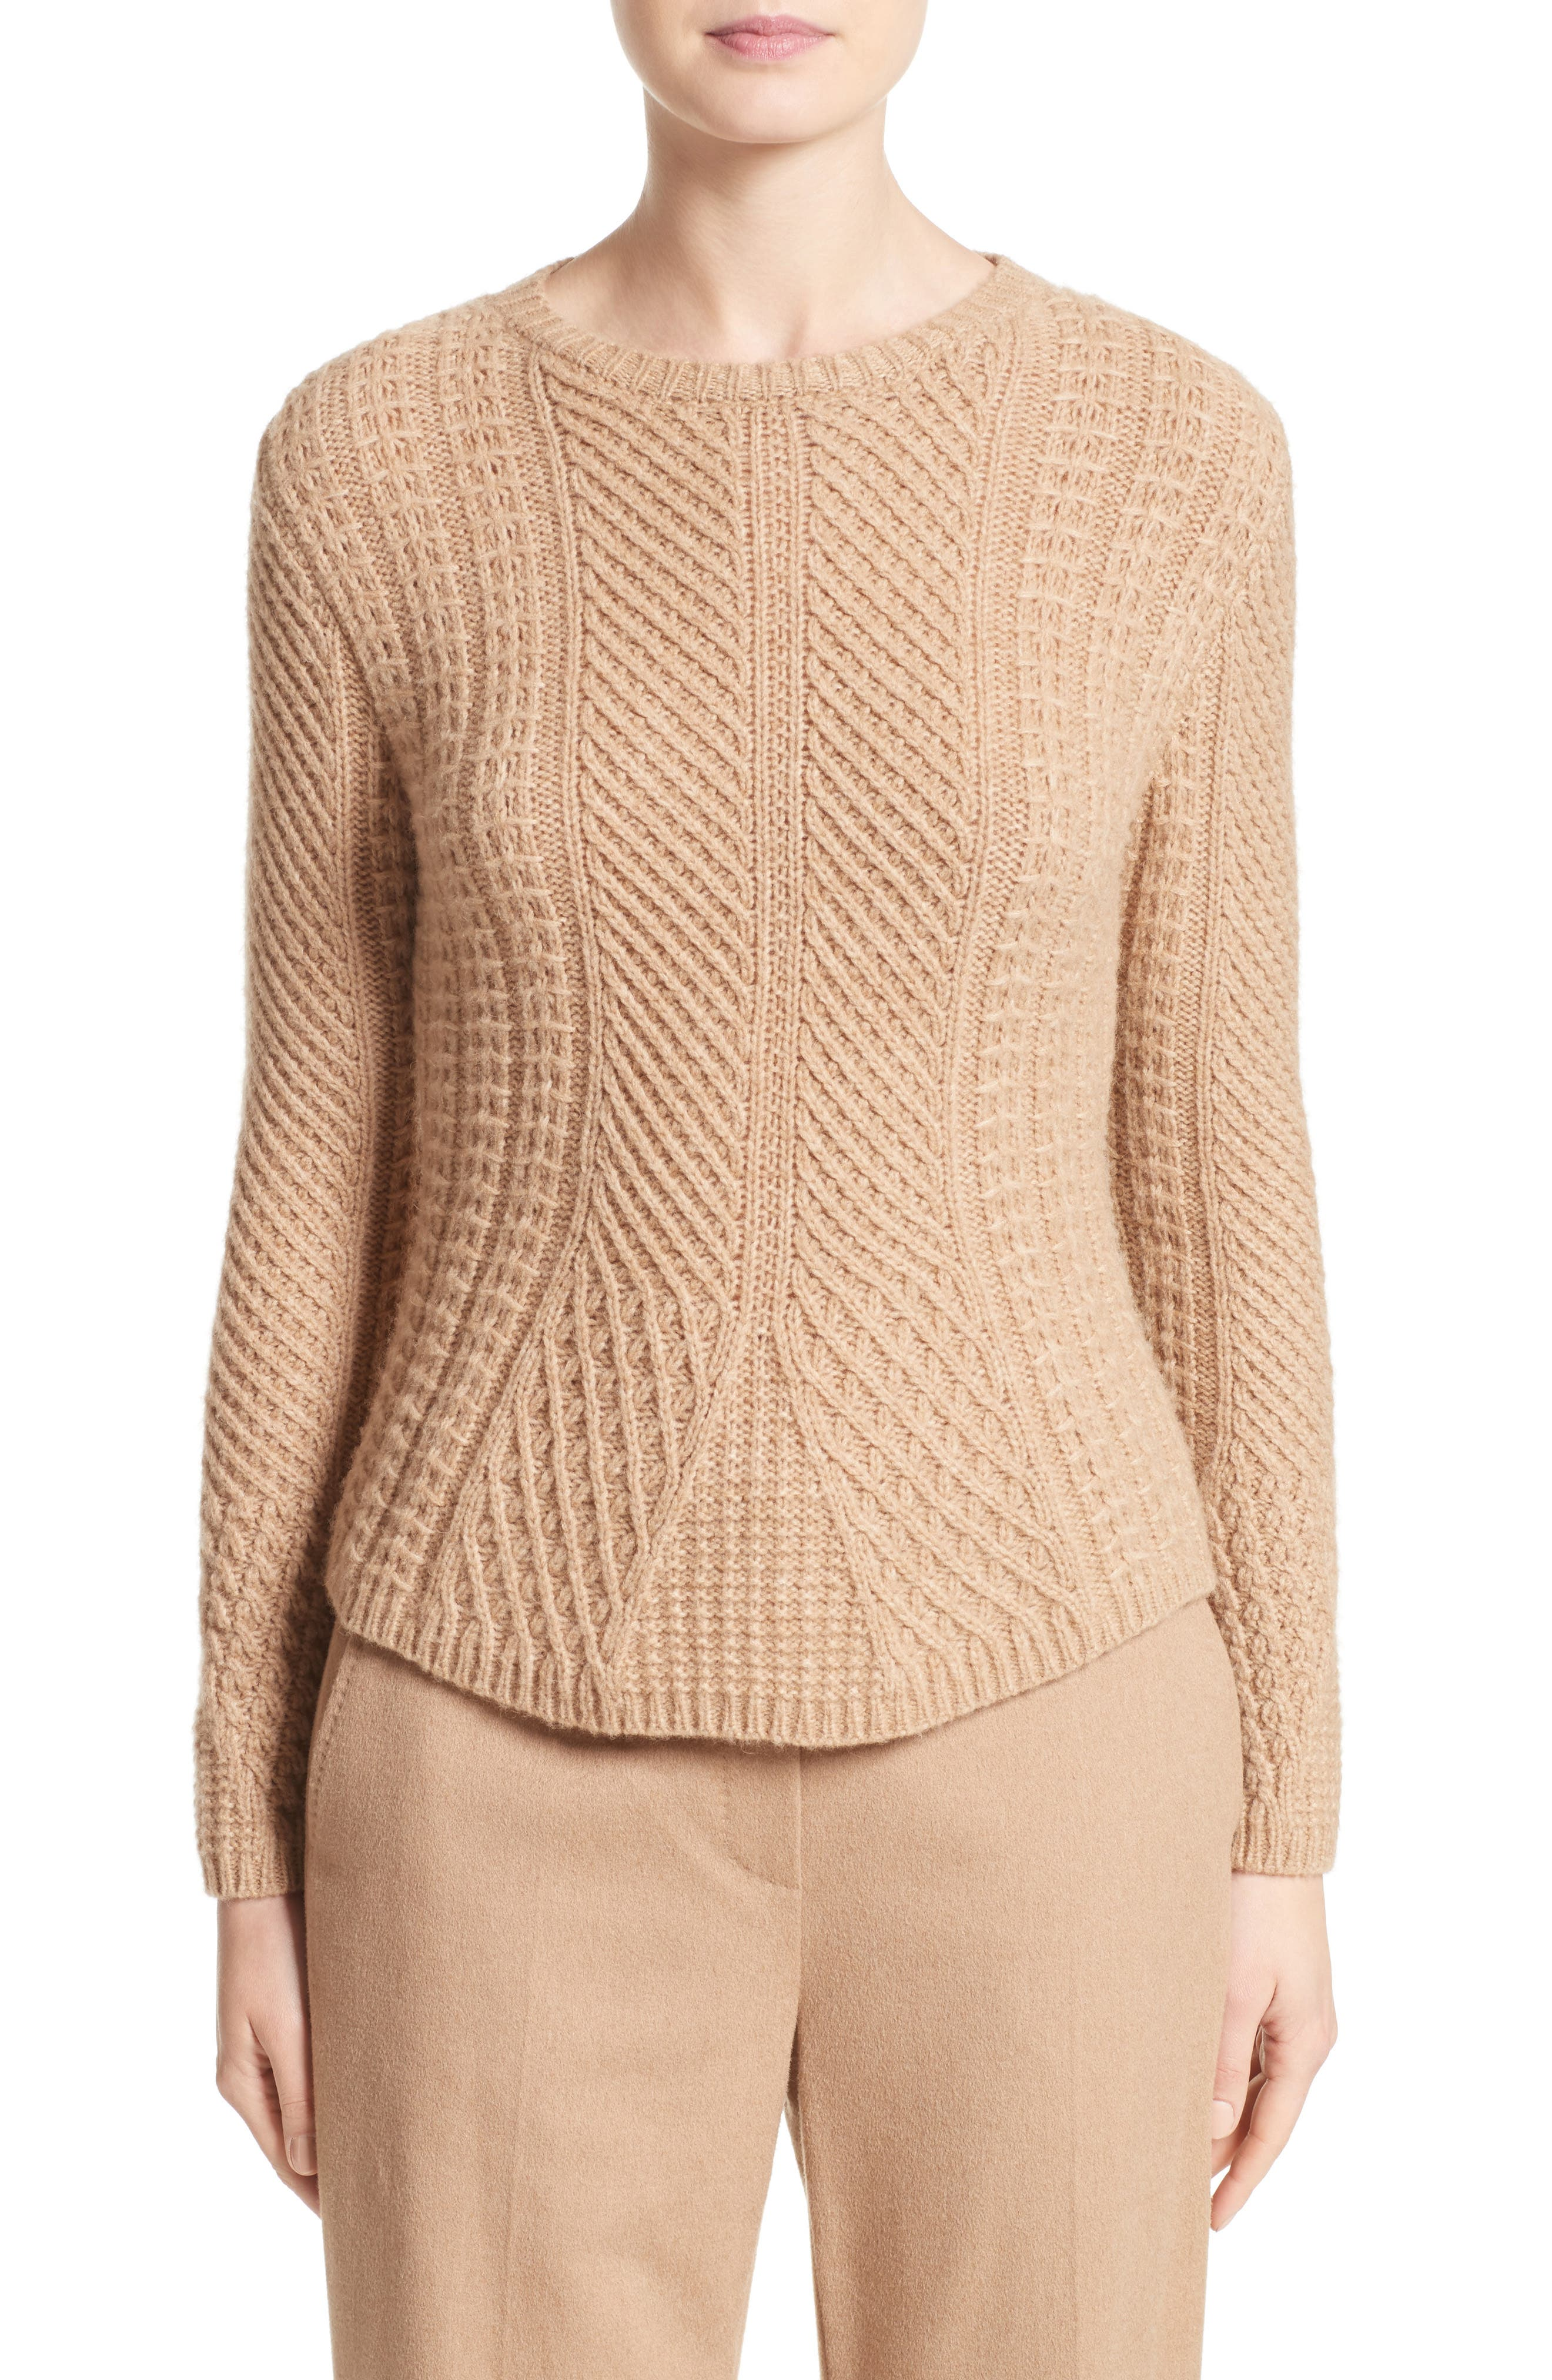 Ronco Sweater,                         Main,                         color, 232